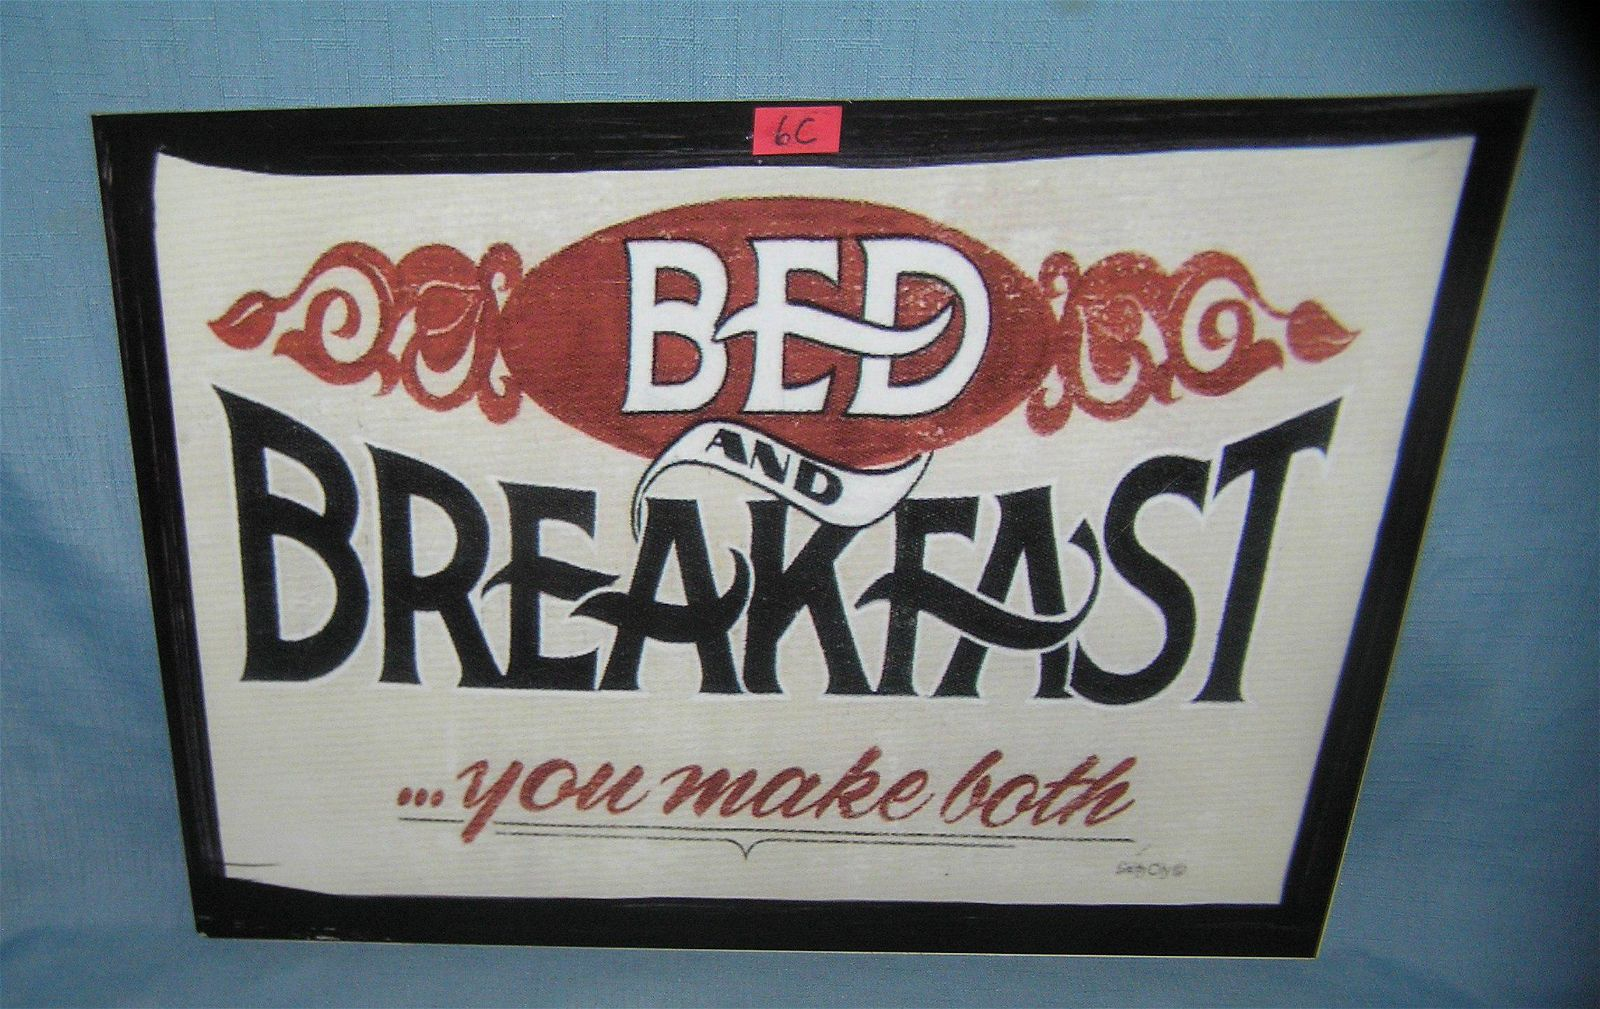 Bed and Breakfast You Make Both retro style sign